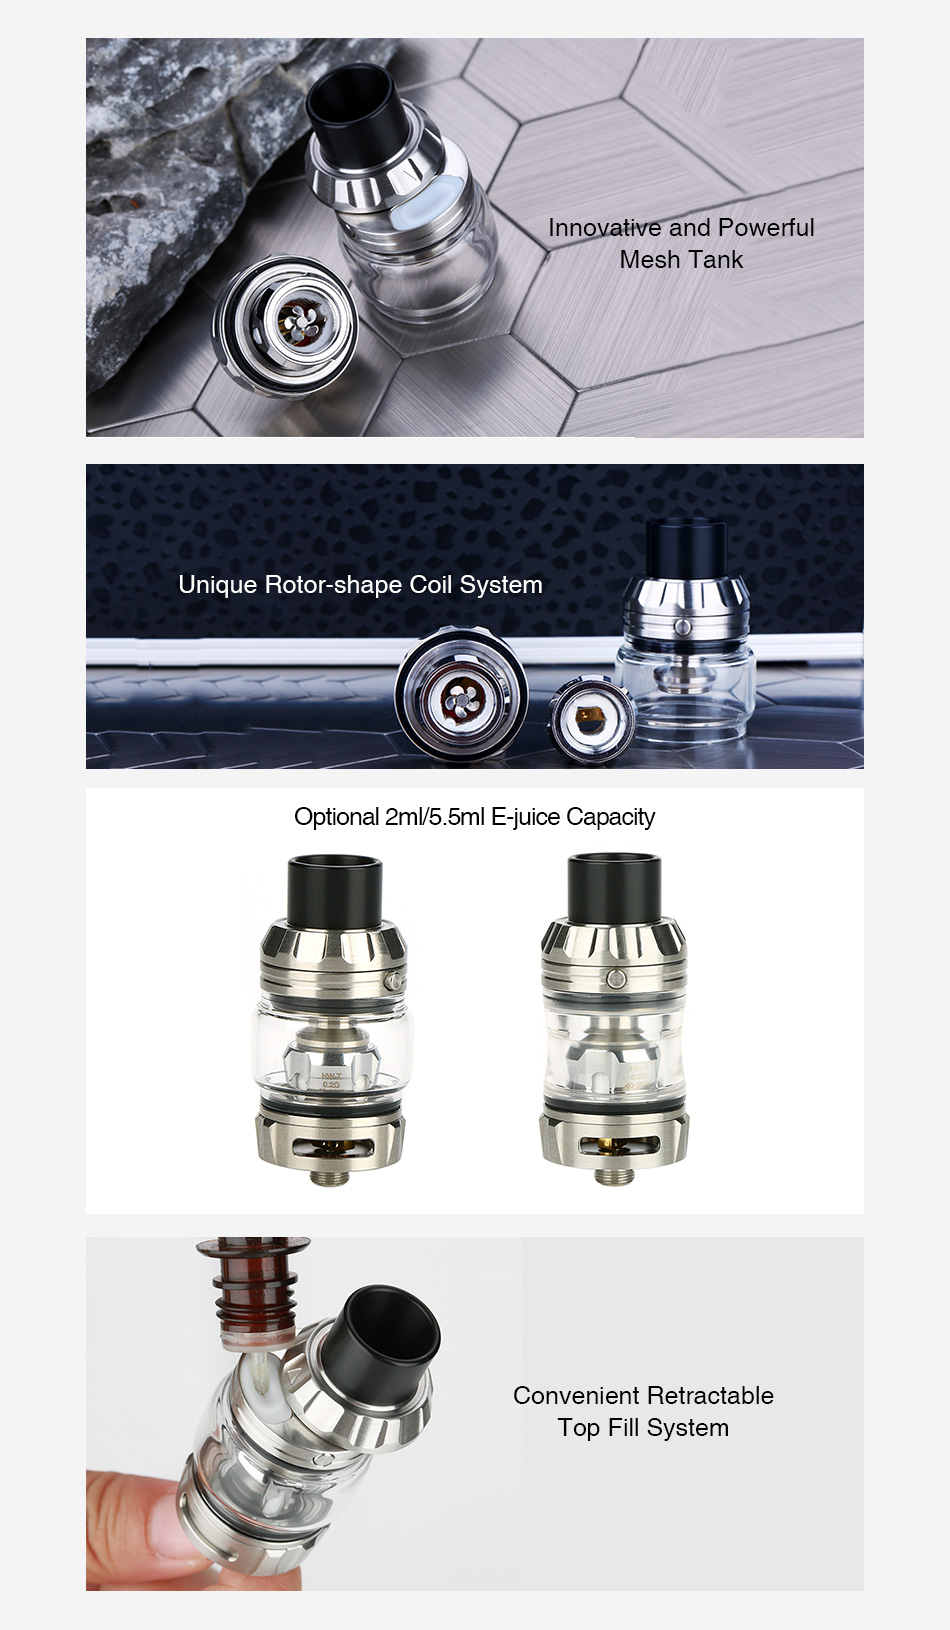 Eleaf Rotor Mesh Tank 2ml/5.5ml